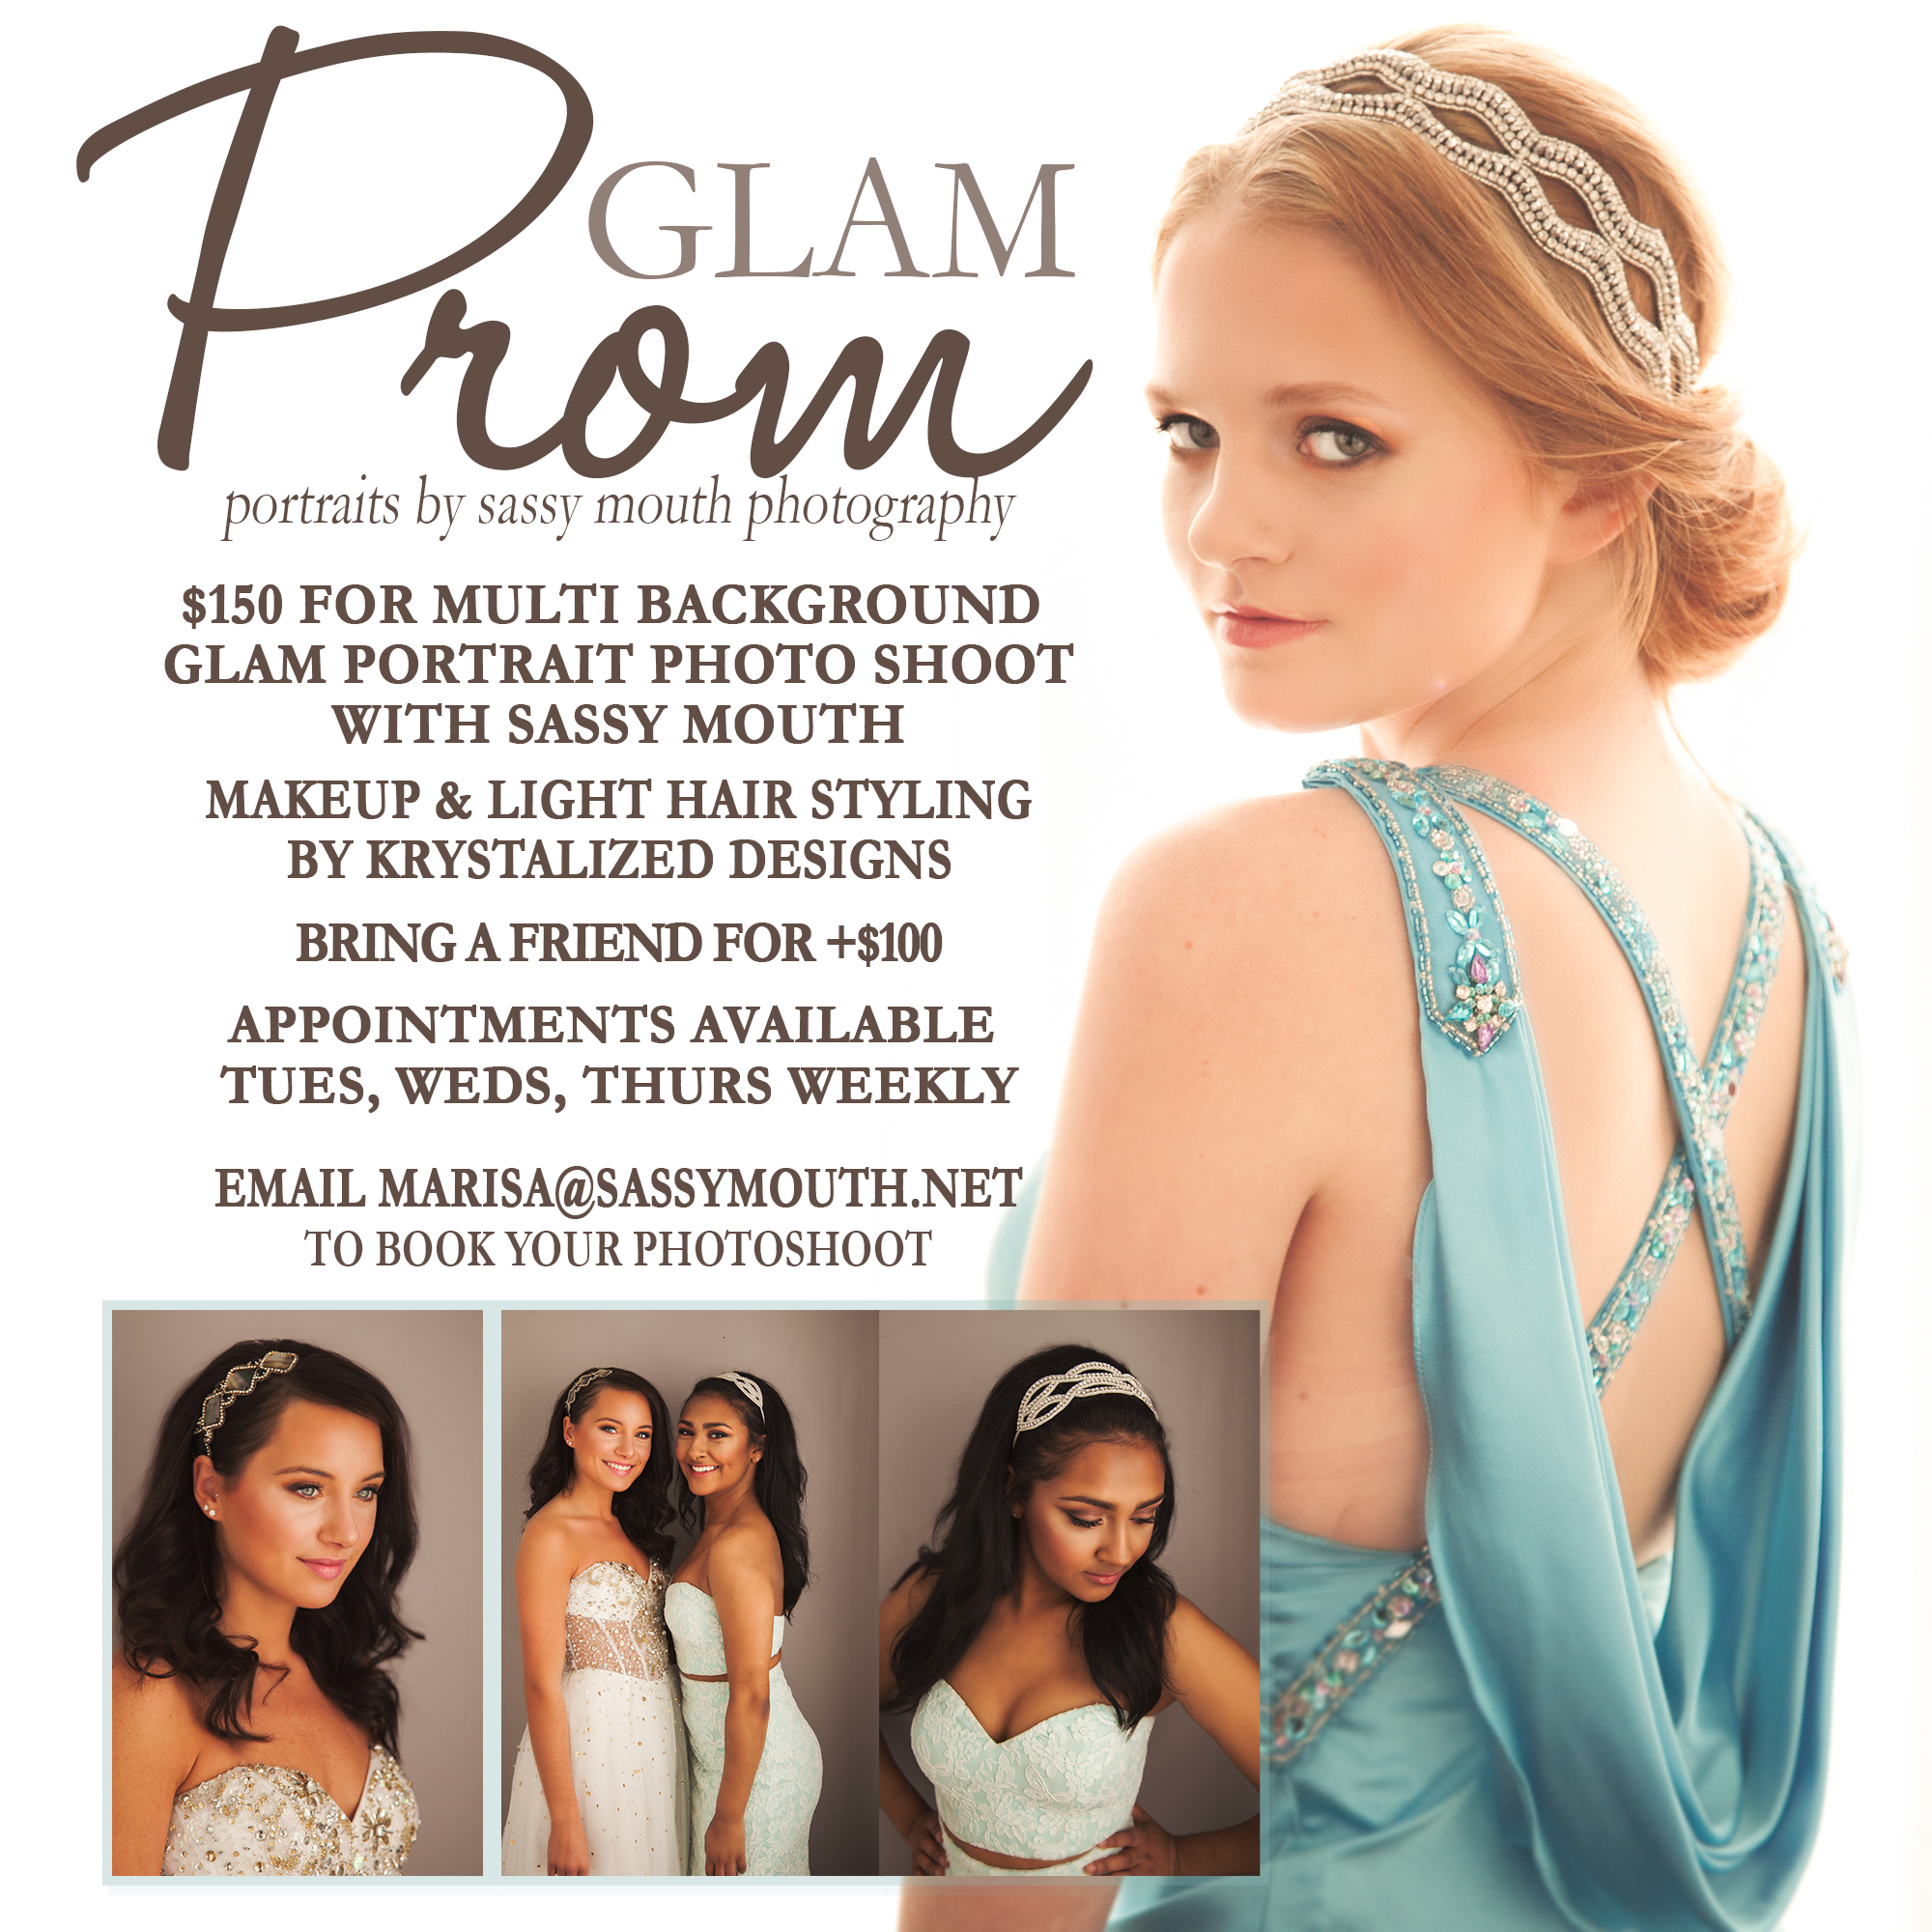 connecticut prom portraits {glam by sassy mouth glamour photo studio